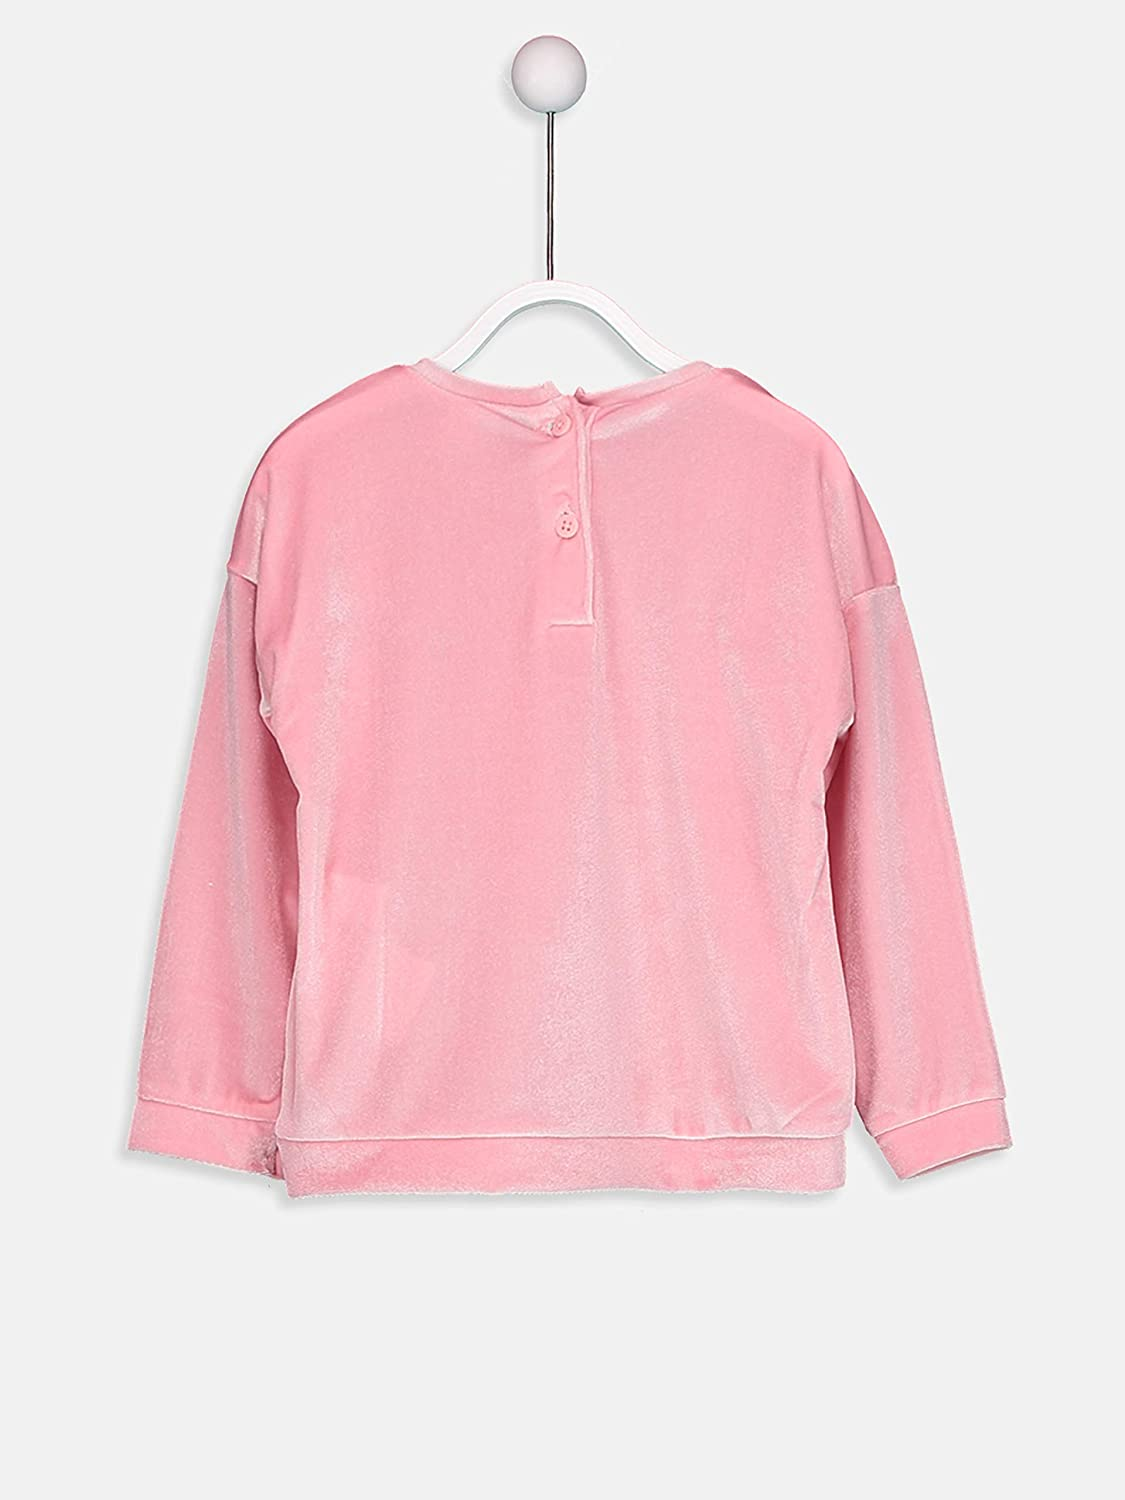 LC WAIKIKI Girls Long Sleeve Sweatshirt with Embroidery and Sequin Inlay Details